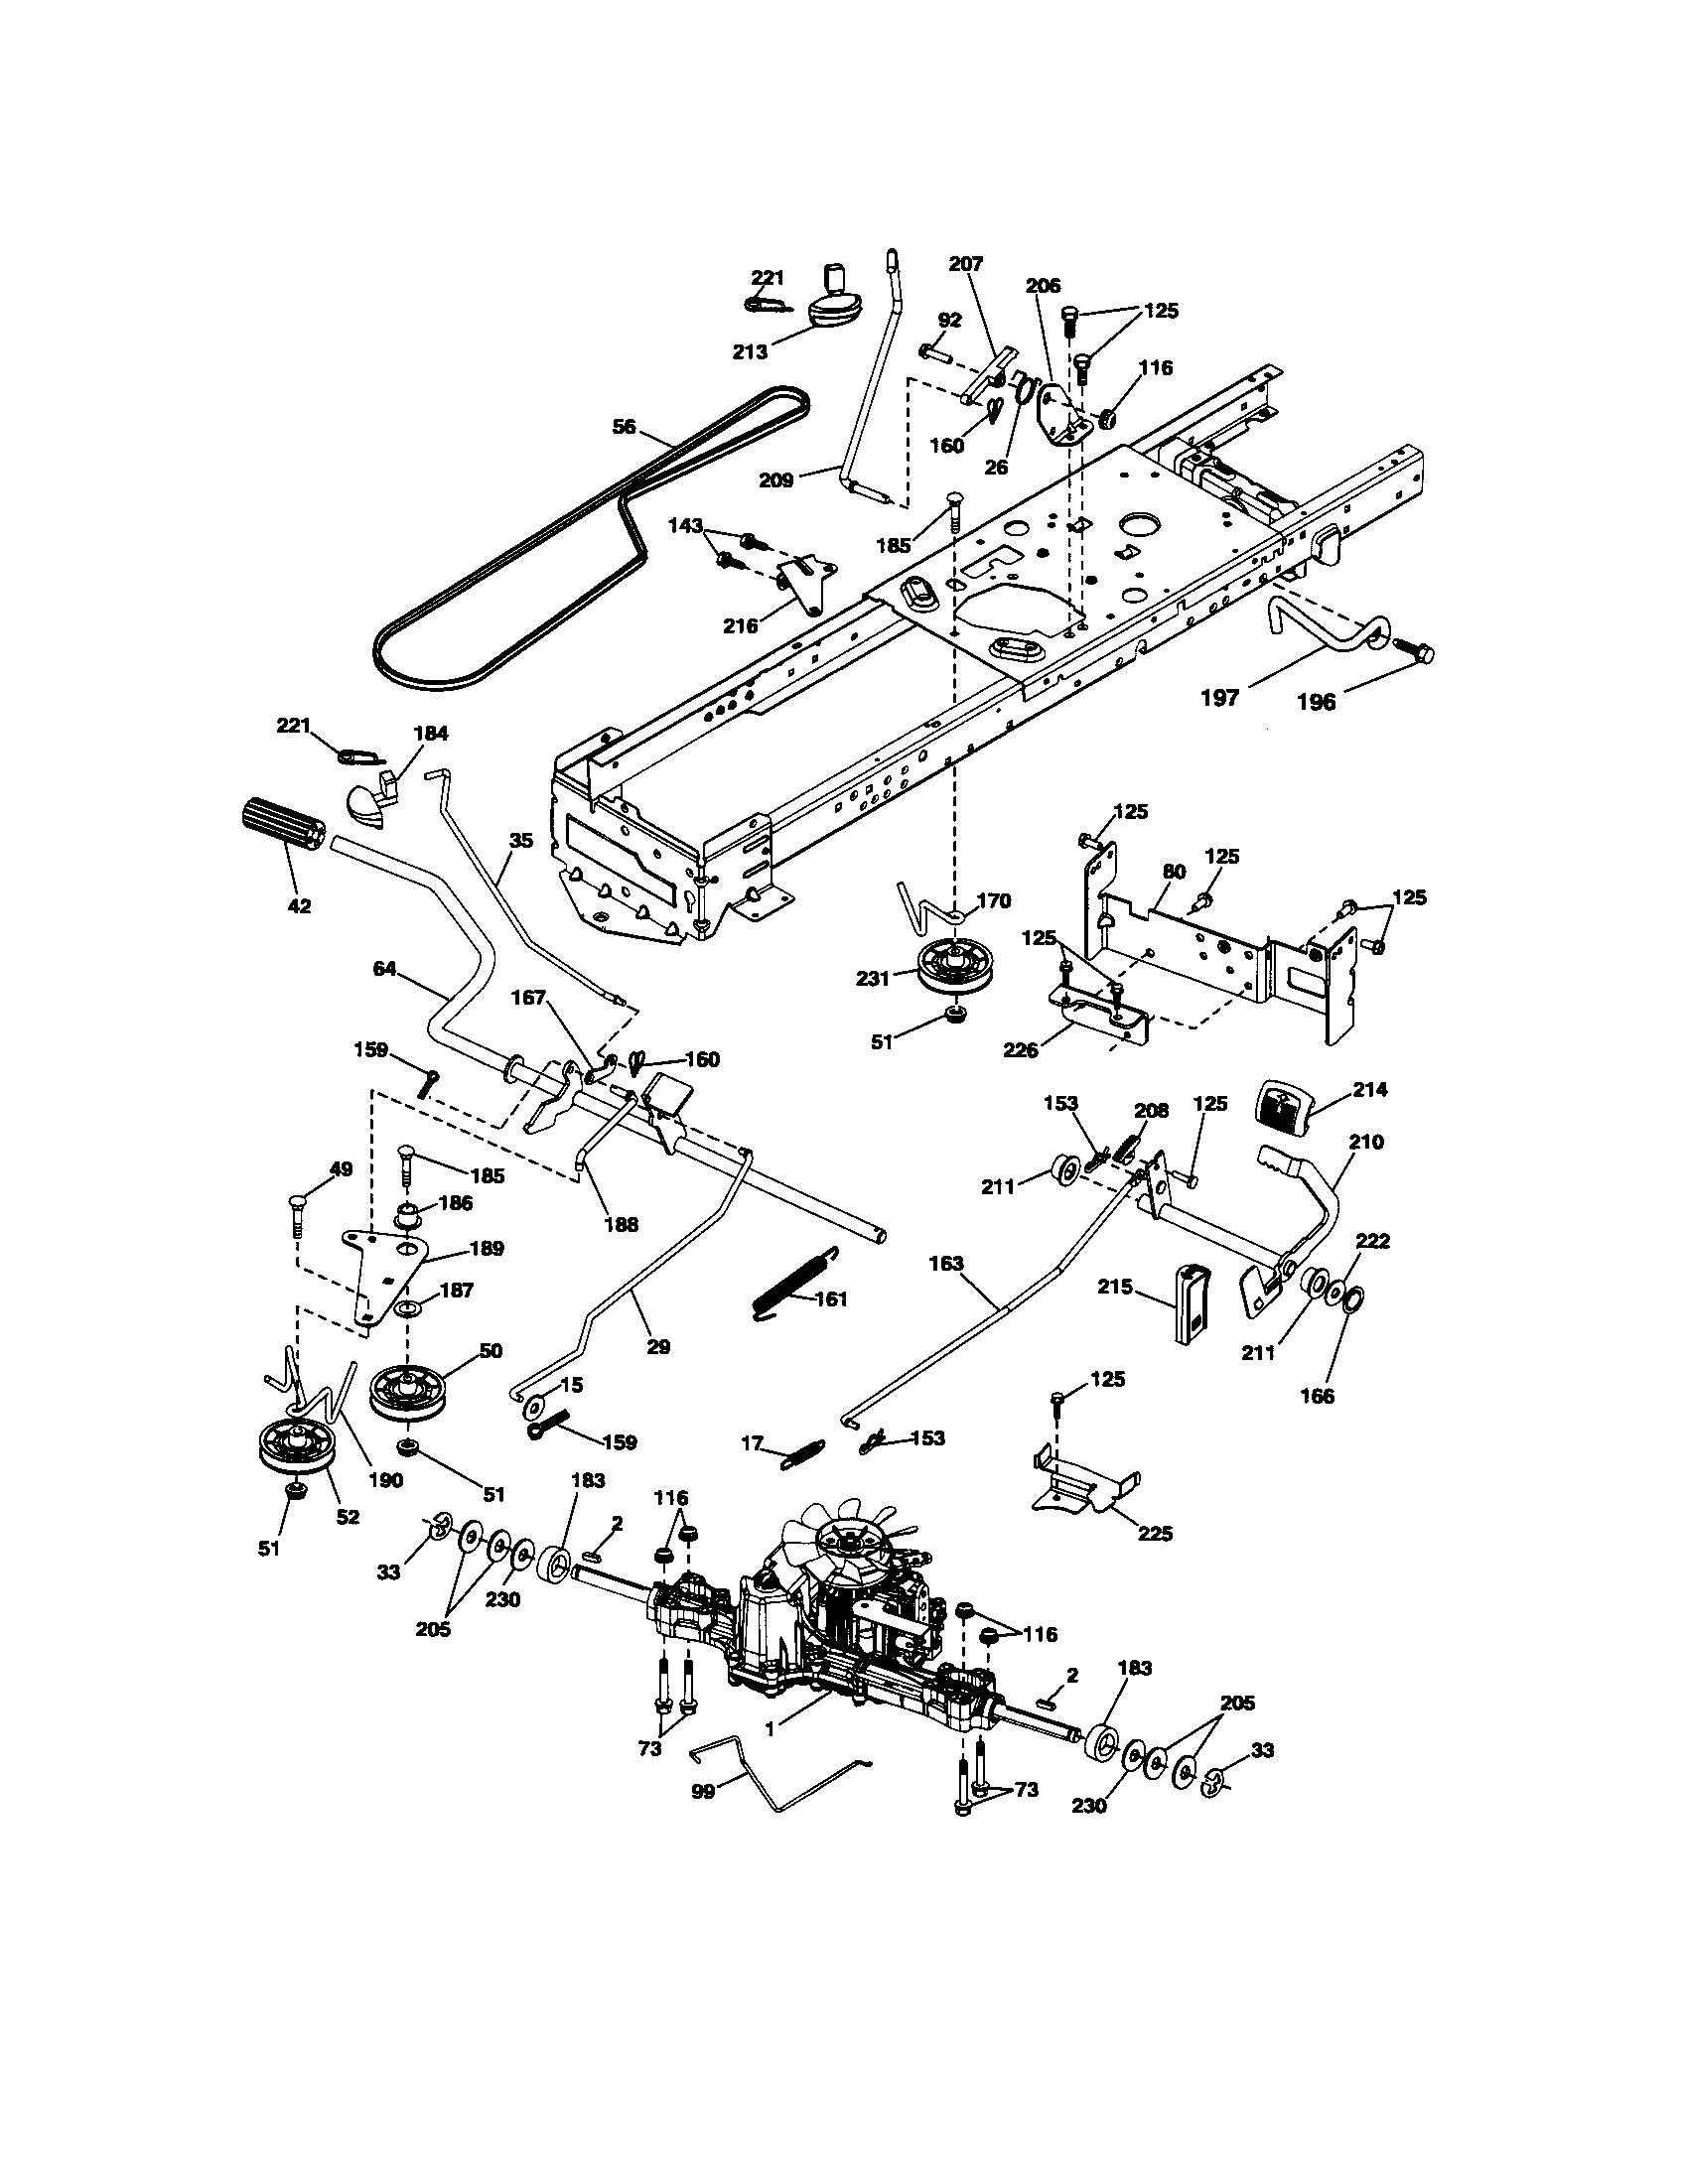 GROUND DRIVE Diagram & Parts List for Model 917289903